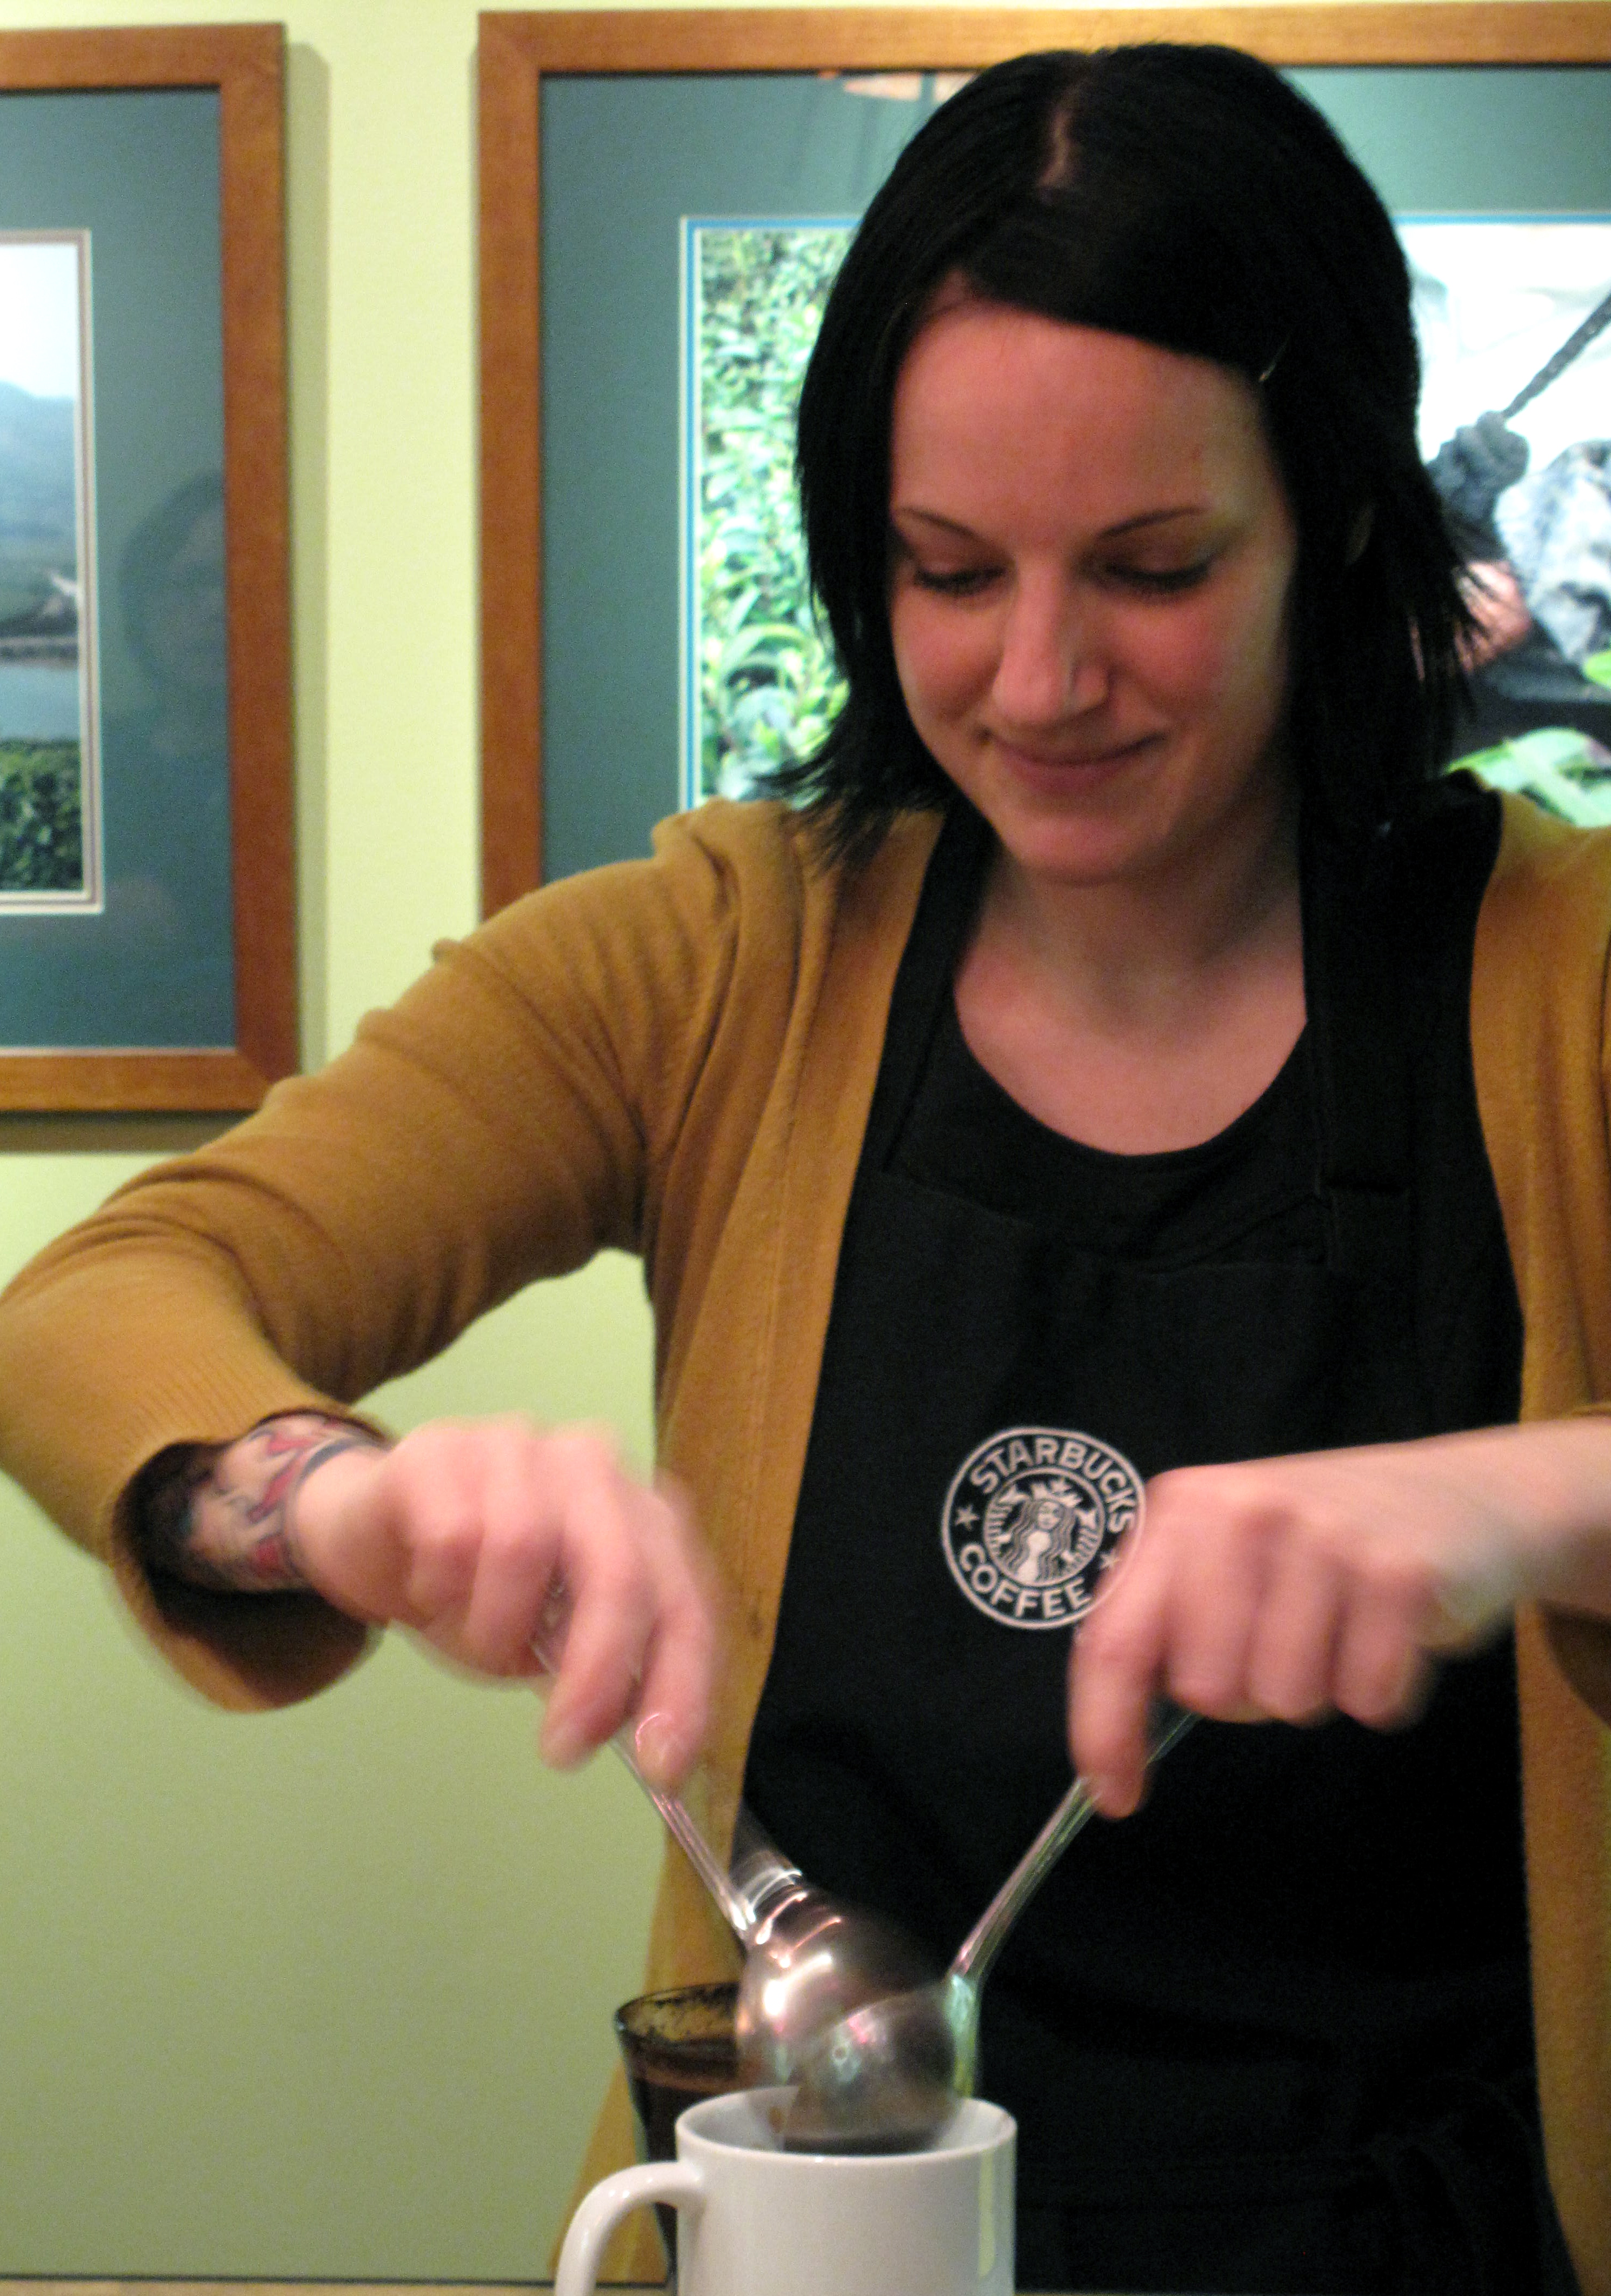 Starbucks's June Ashley demonstrating how to break the seal.